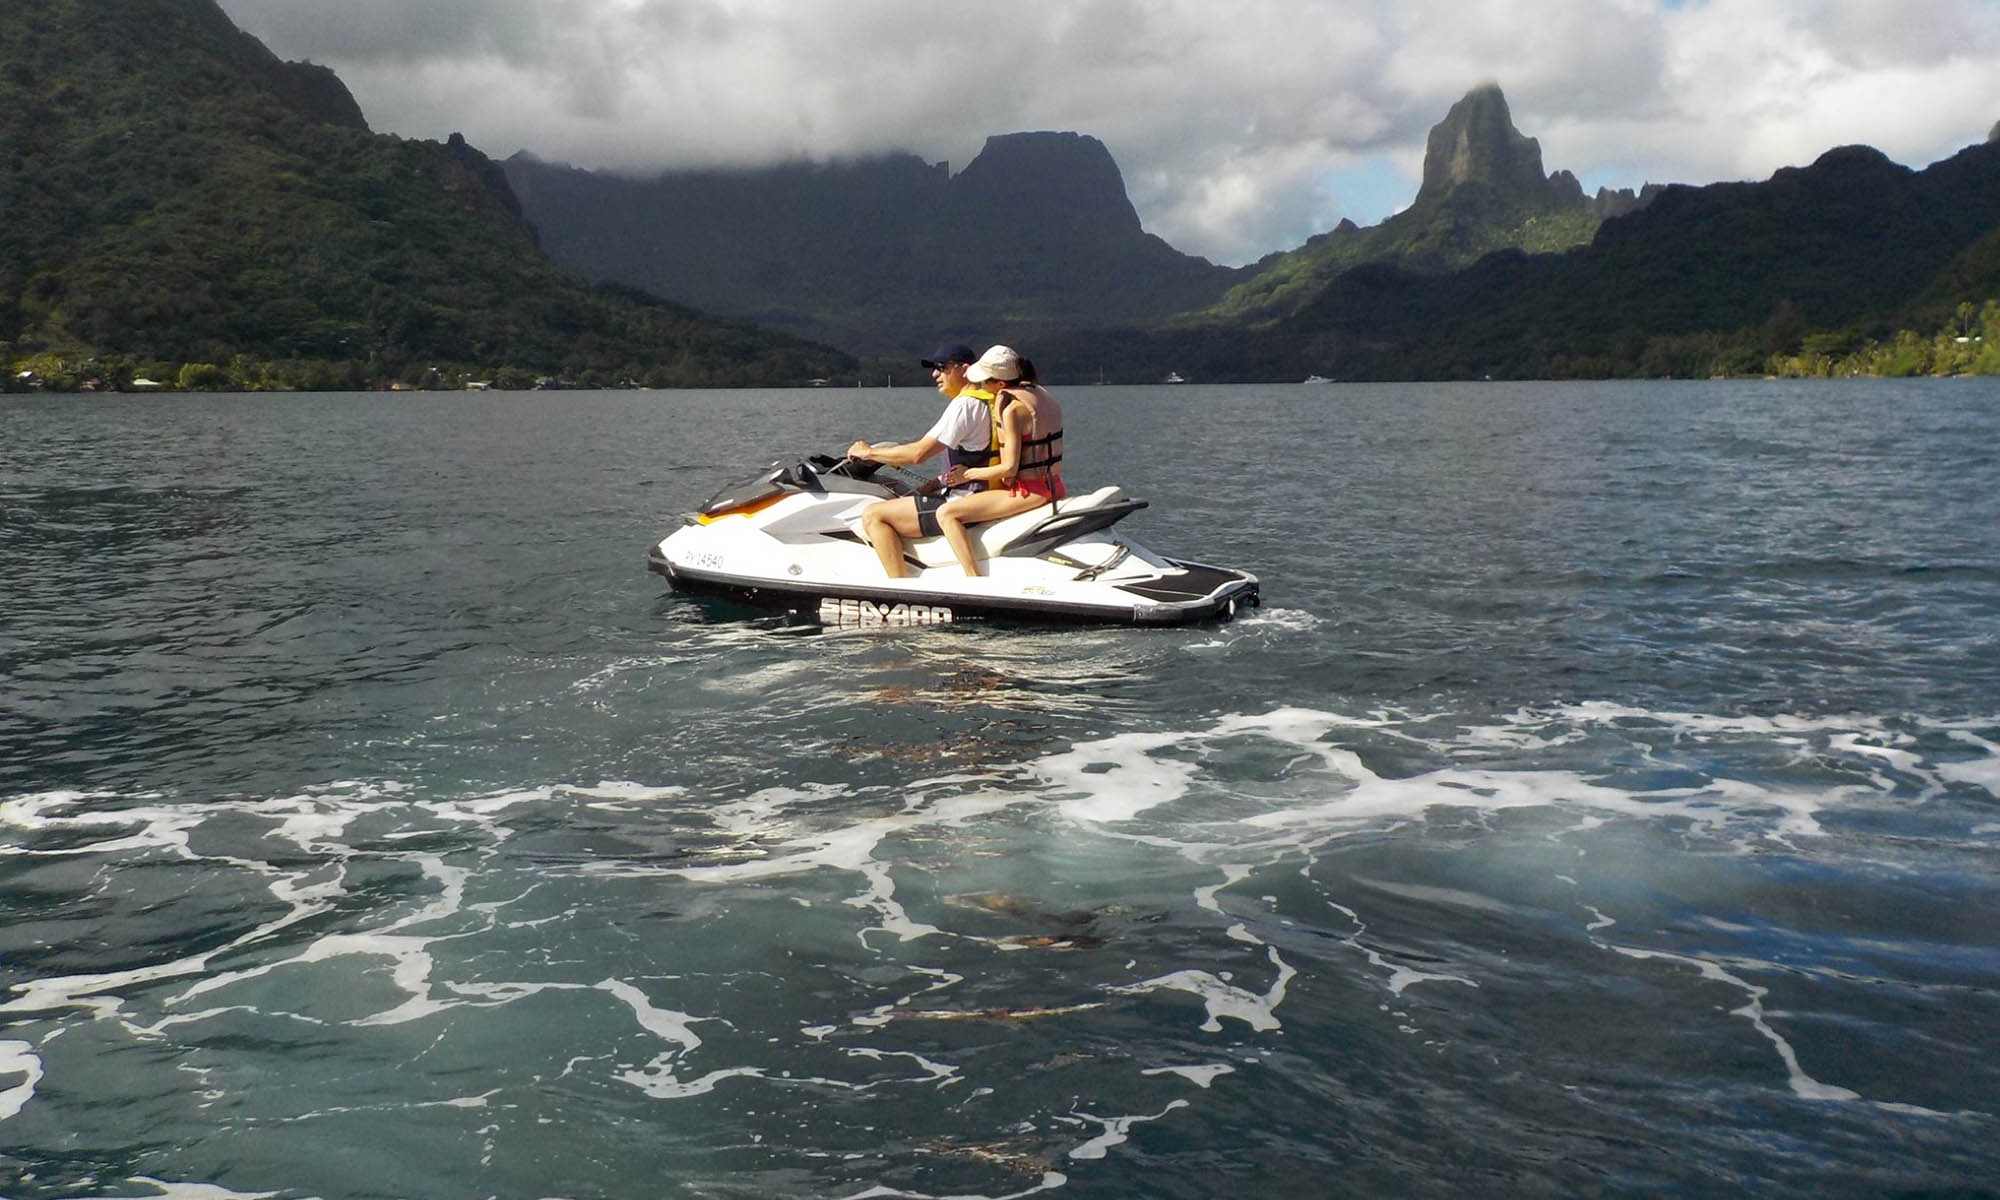 Moorea Day Tour: Jet Ski Excursion, Lunch at MBC Next Door and 4x4 Safari